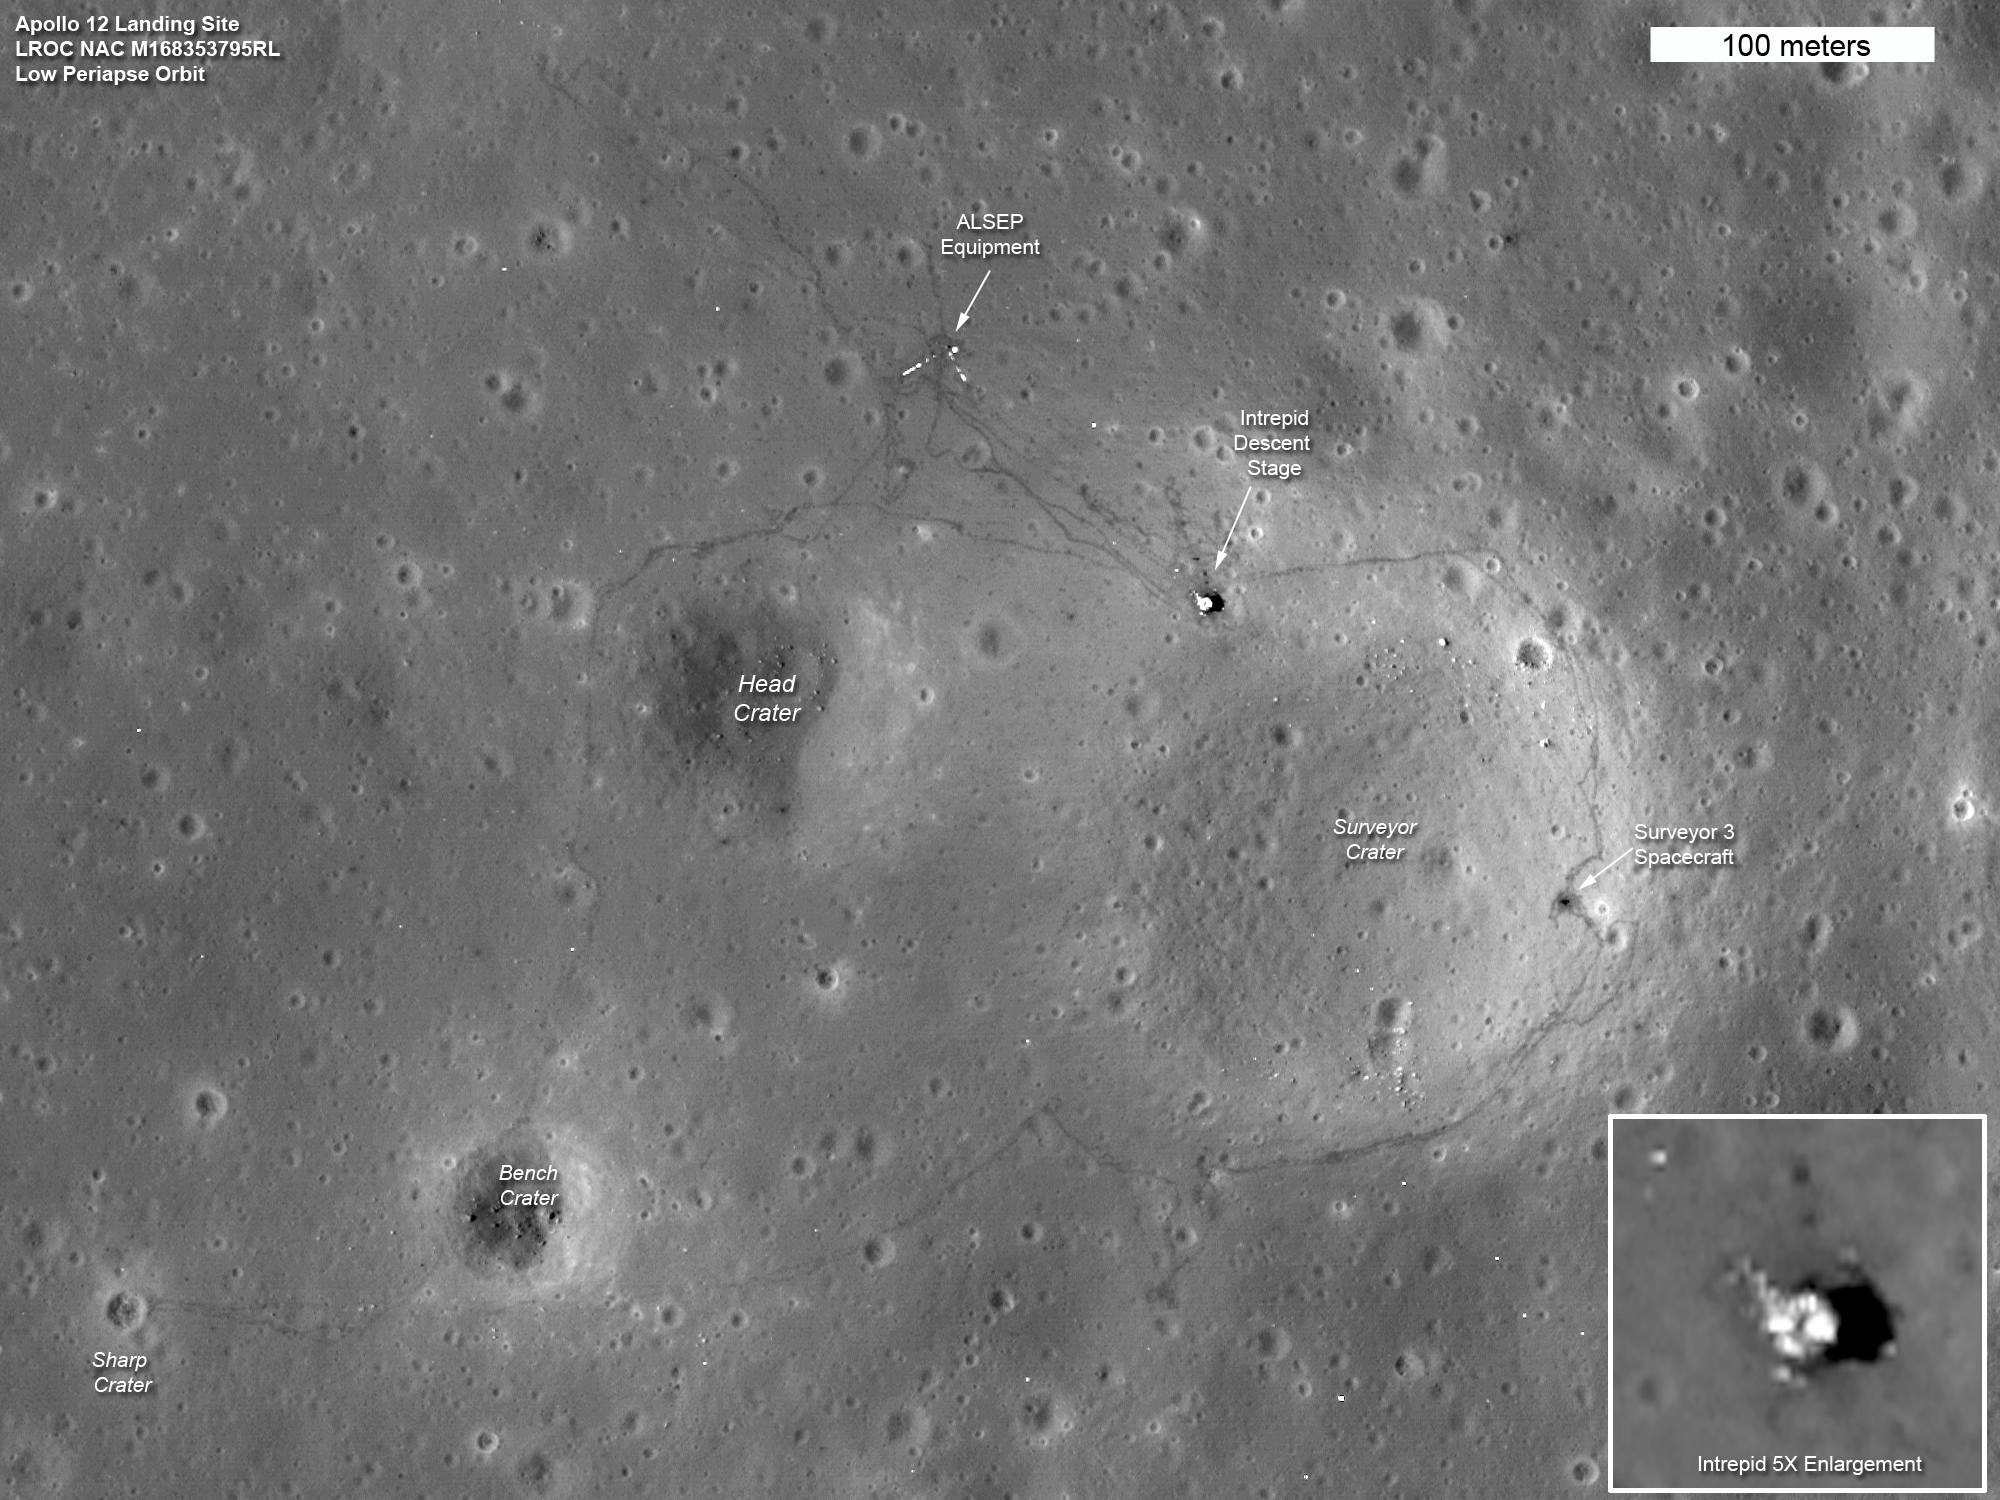 apollo 11 landing site earth - photo #7